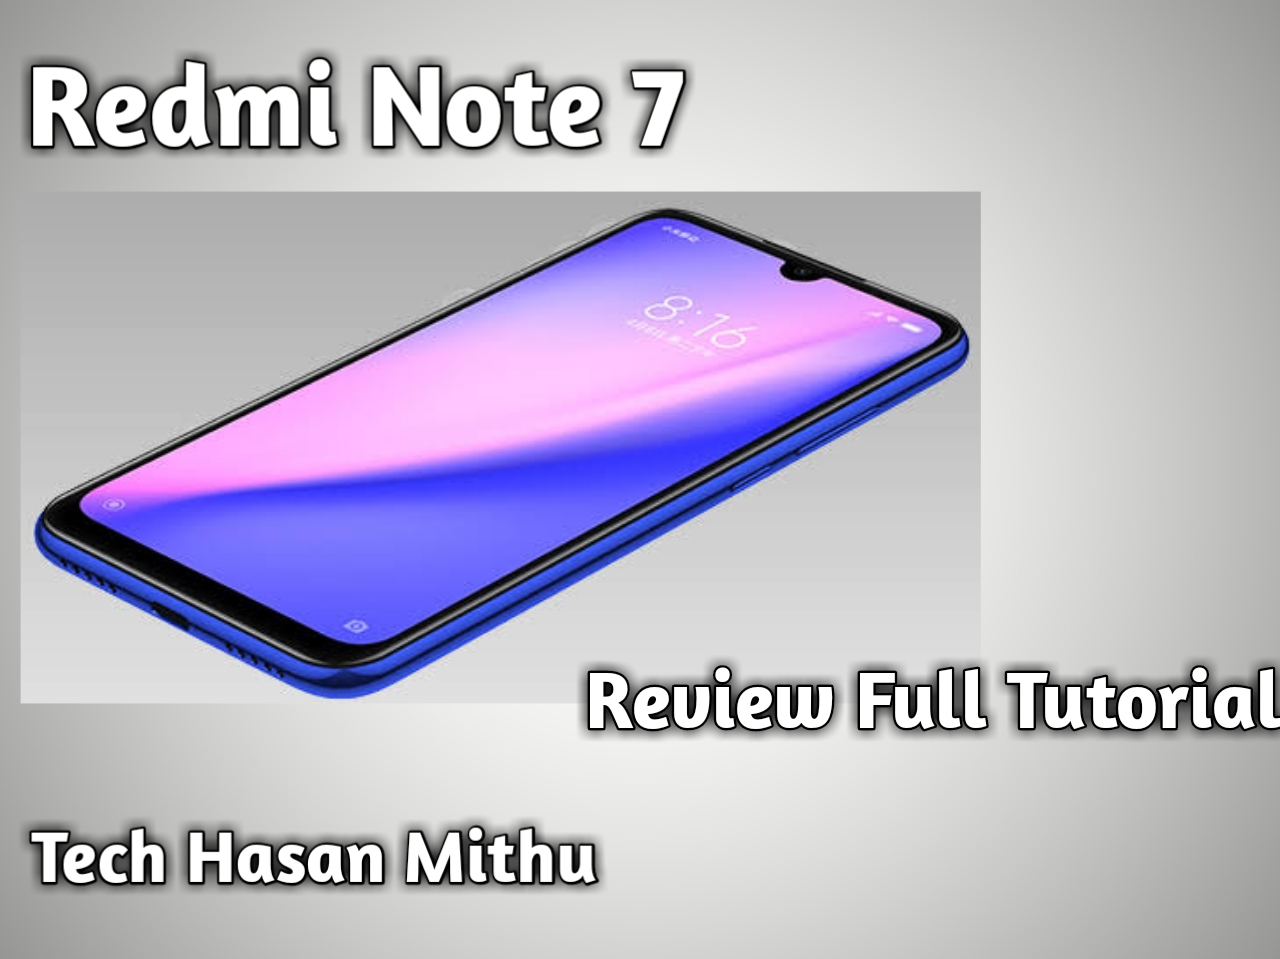 Redmi Note 7 Review